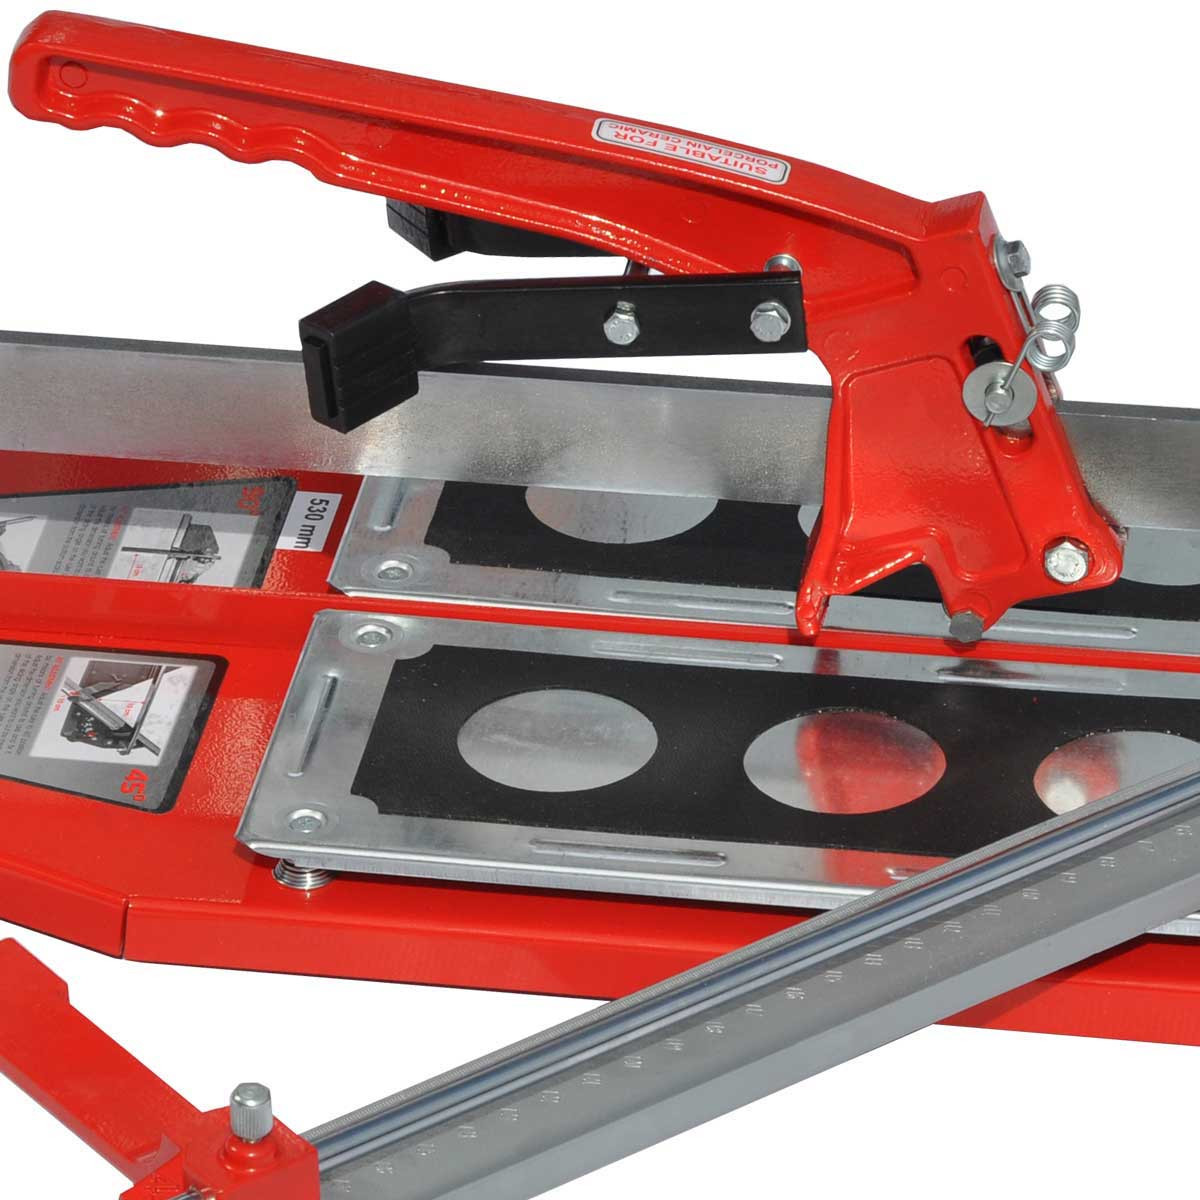 Mega-Cut Porcelain Tile cutter